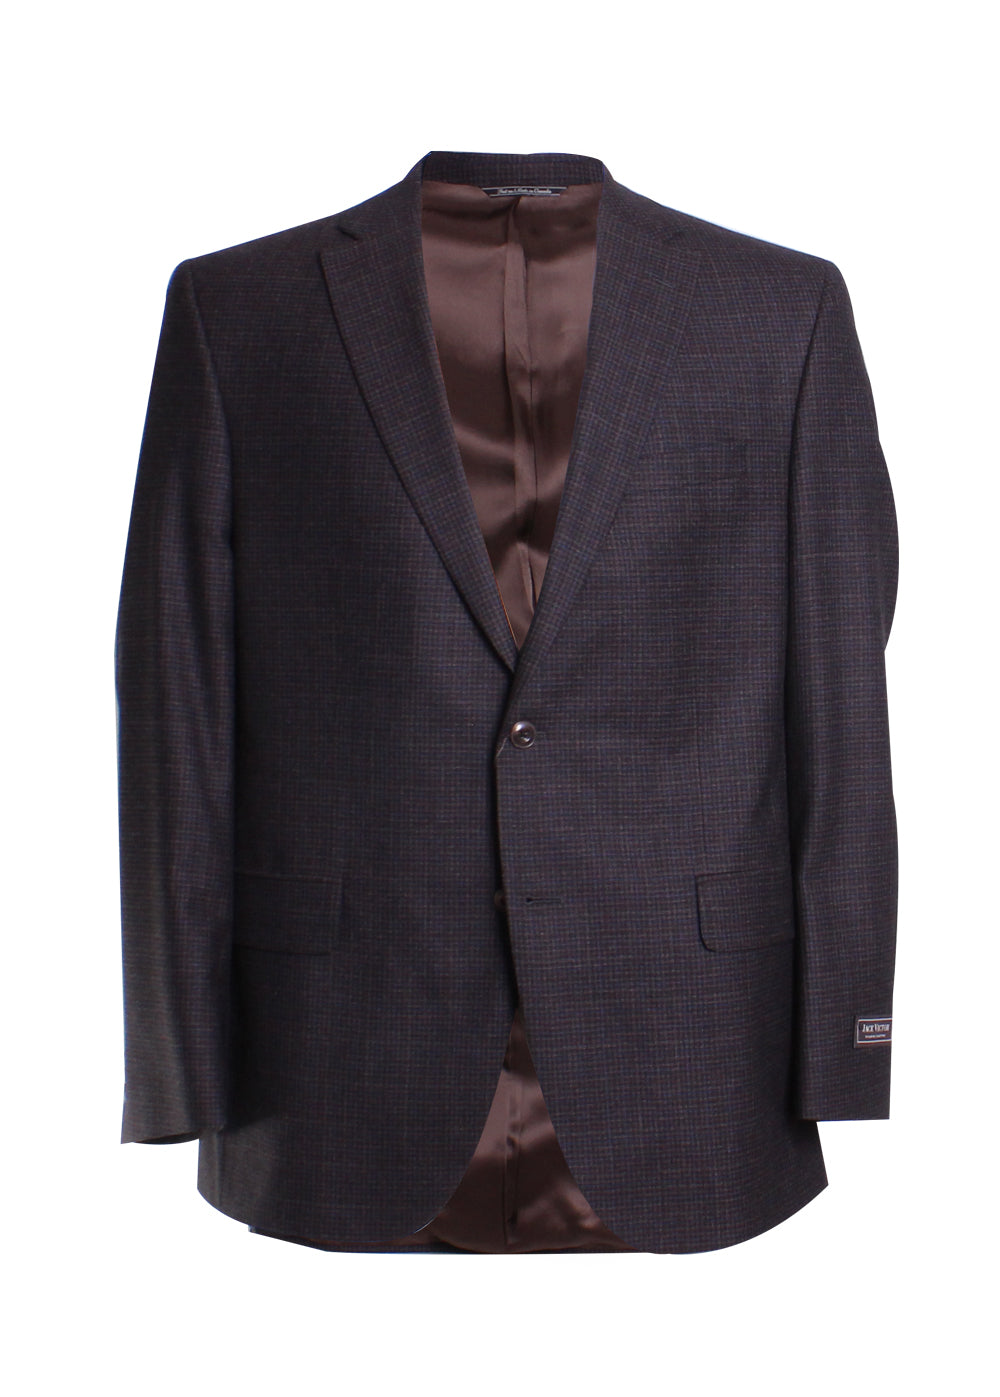 Plaid Blazer Sportcoat in Brown